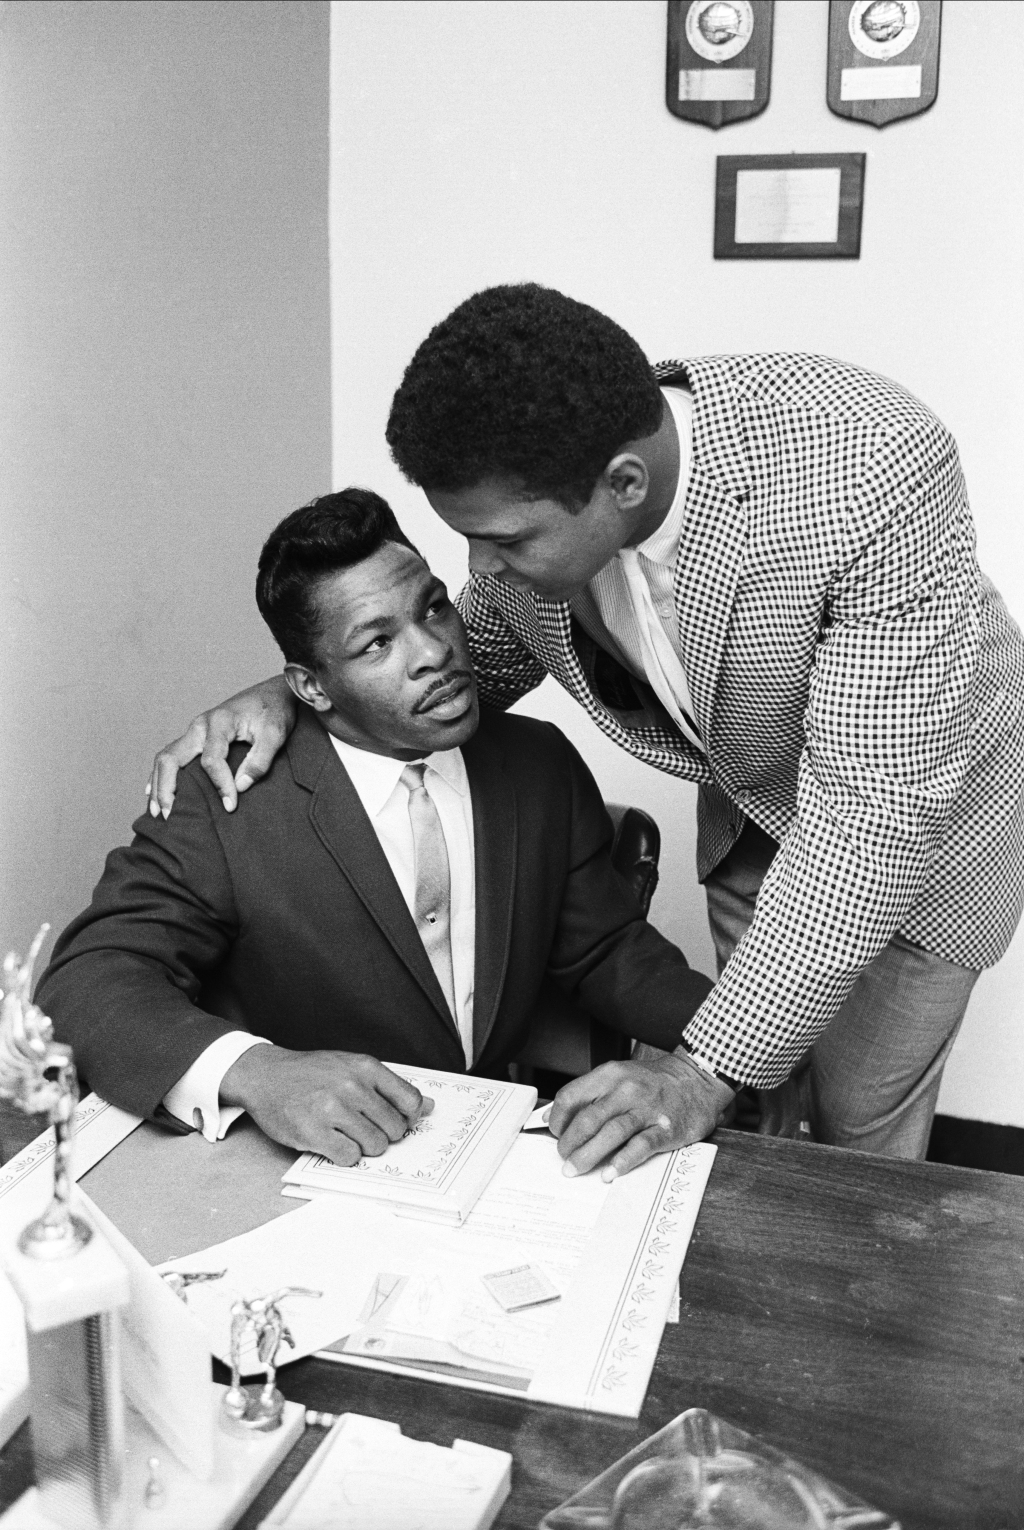 """Ali idolized Sugar Ray Robinson, a legendary boxer who owned his own gym in Harlem, New York. """"His real hero was Sugar Ray,"""" says Schapiro. """"And he had an appointment to meet Sugar Ray in New York at Sugar Ray's gym. We all got in [Ali's] car and we drove. As we were driving, he was shouting out the window at everybody. And we drove along like that, in high spirits. And we got to Sugar Ray's gym and we were there, and we waited for Sugar Ray to come. We we're waiting and we're waiting more, and then it became slowly obvious that Sugar Ray was not coming to the gym. And for the first time on that trip, Mohammad became very, very quiet. And then we got back in the car and we drive down 125th street, and quite by accident we saw Sugar Ray walking."""" They stopped, and the entourage went into Robinson's office. """"The two just got along famously,"""" Schapiro says. """"Y'know, this was a very, very big deal for [Ali.] Here he was, meeting his hero. And here he was because [Robinson] knew who he was. Being Ali, he knew, 'I'm gonna be the champ some day.'"""""""